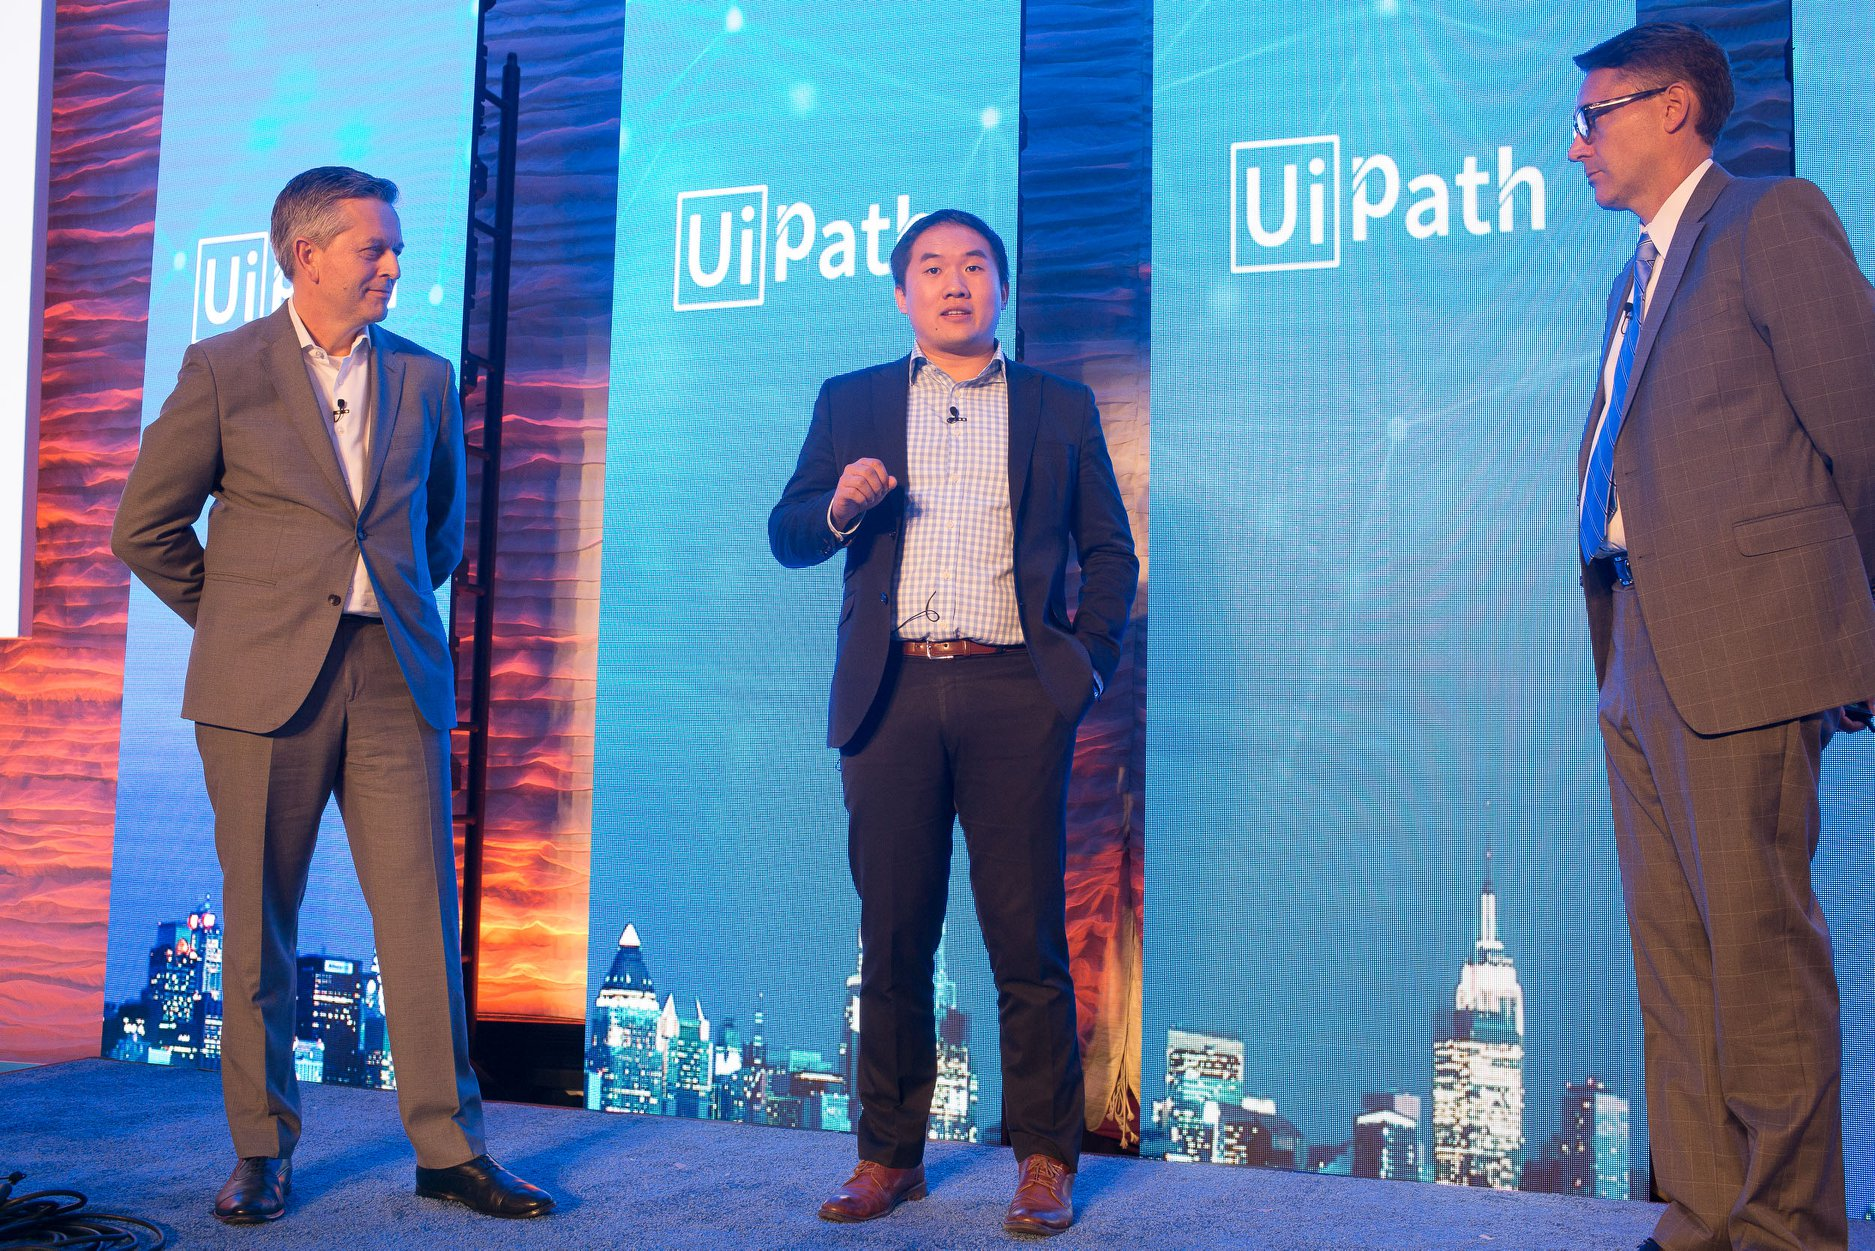 uipath-together-new-york-2